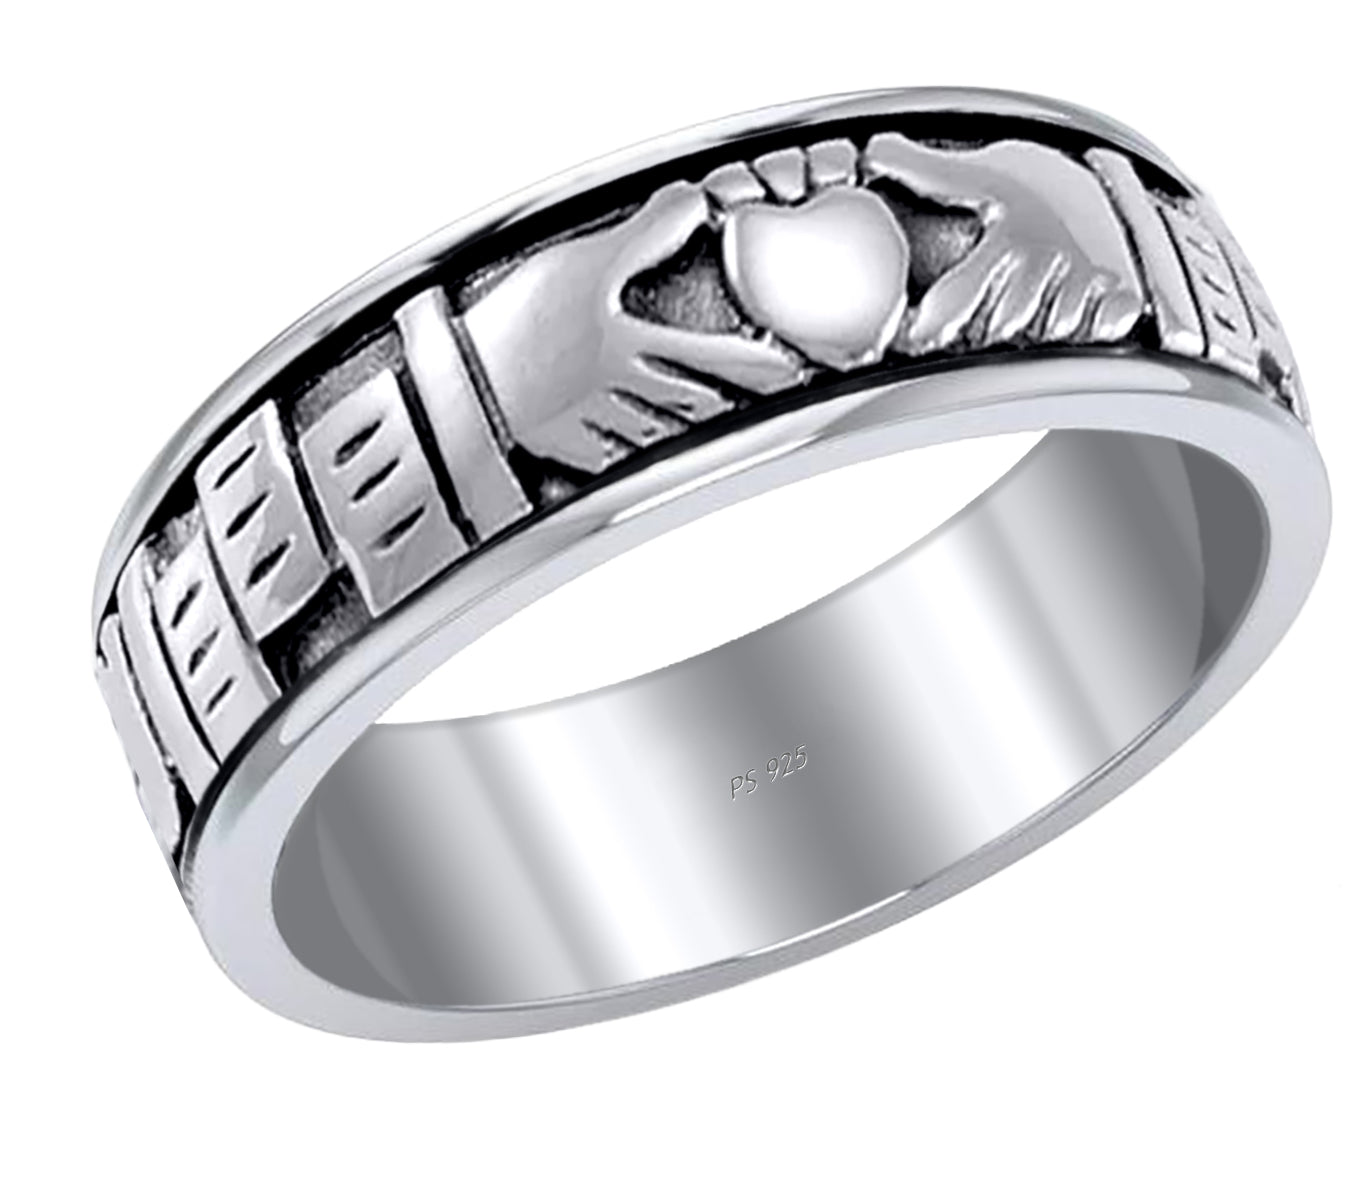 MIrish Celtic Claddagh Spinner Ring Band For Men In Silver